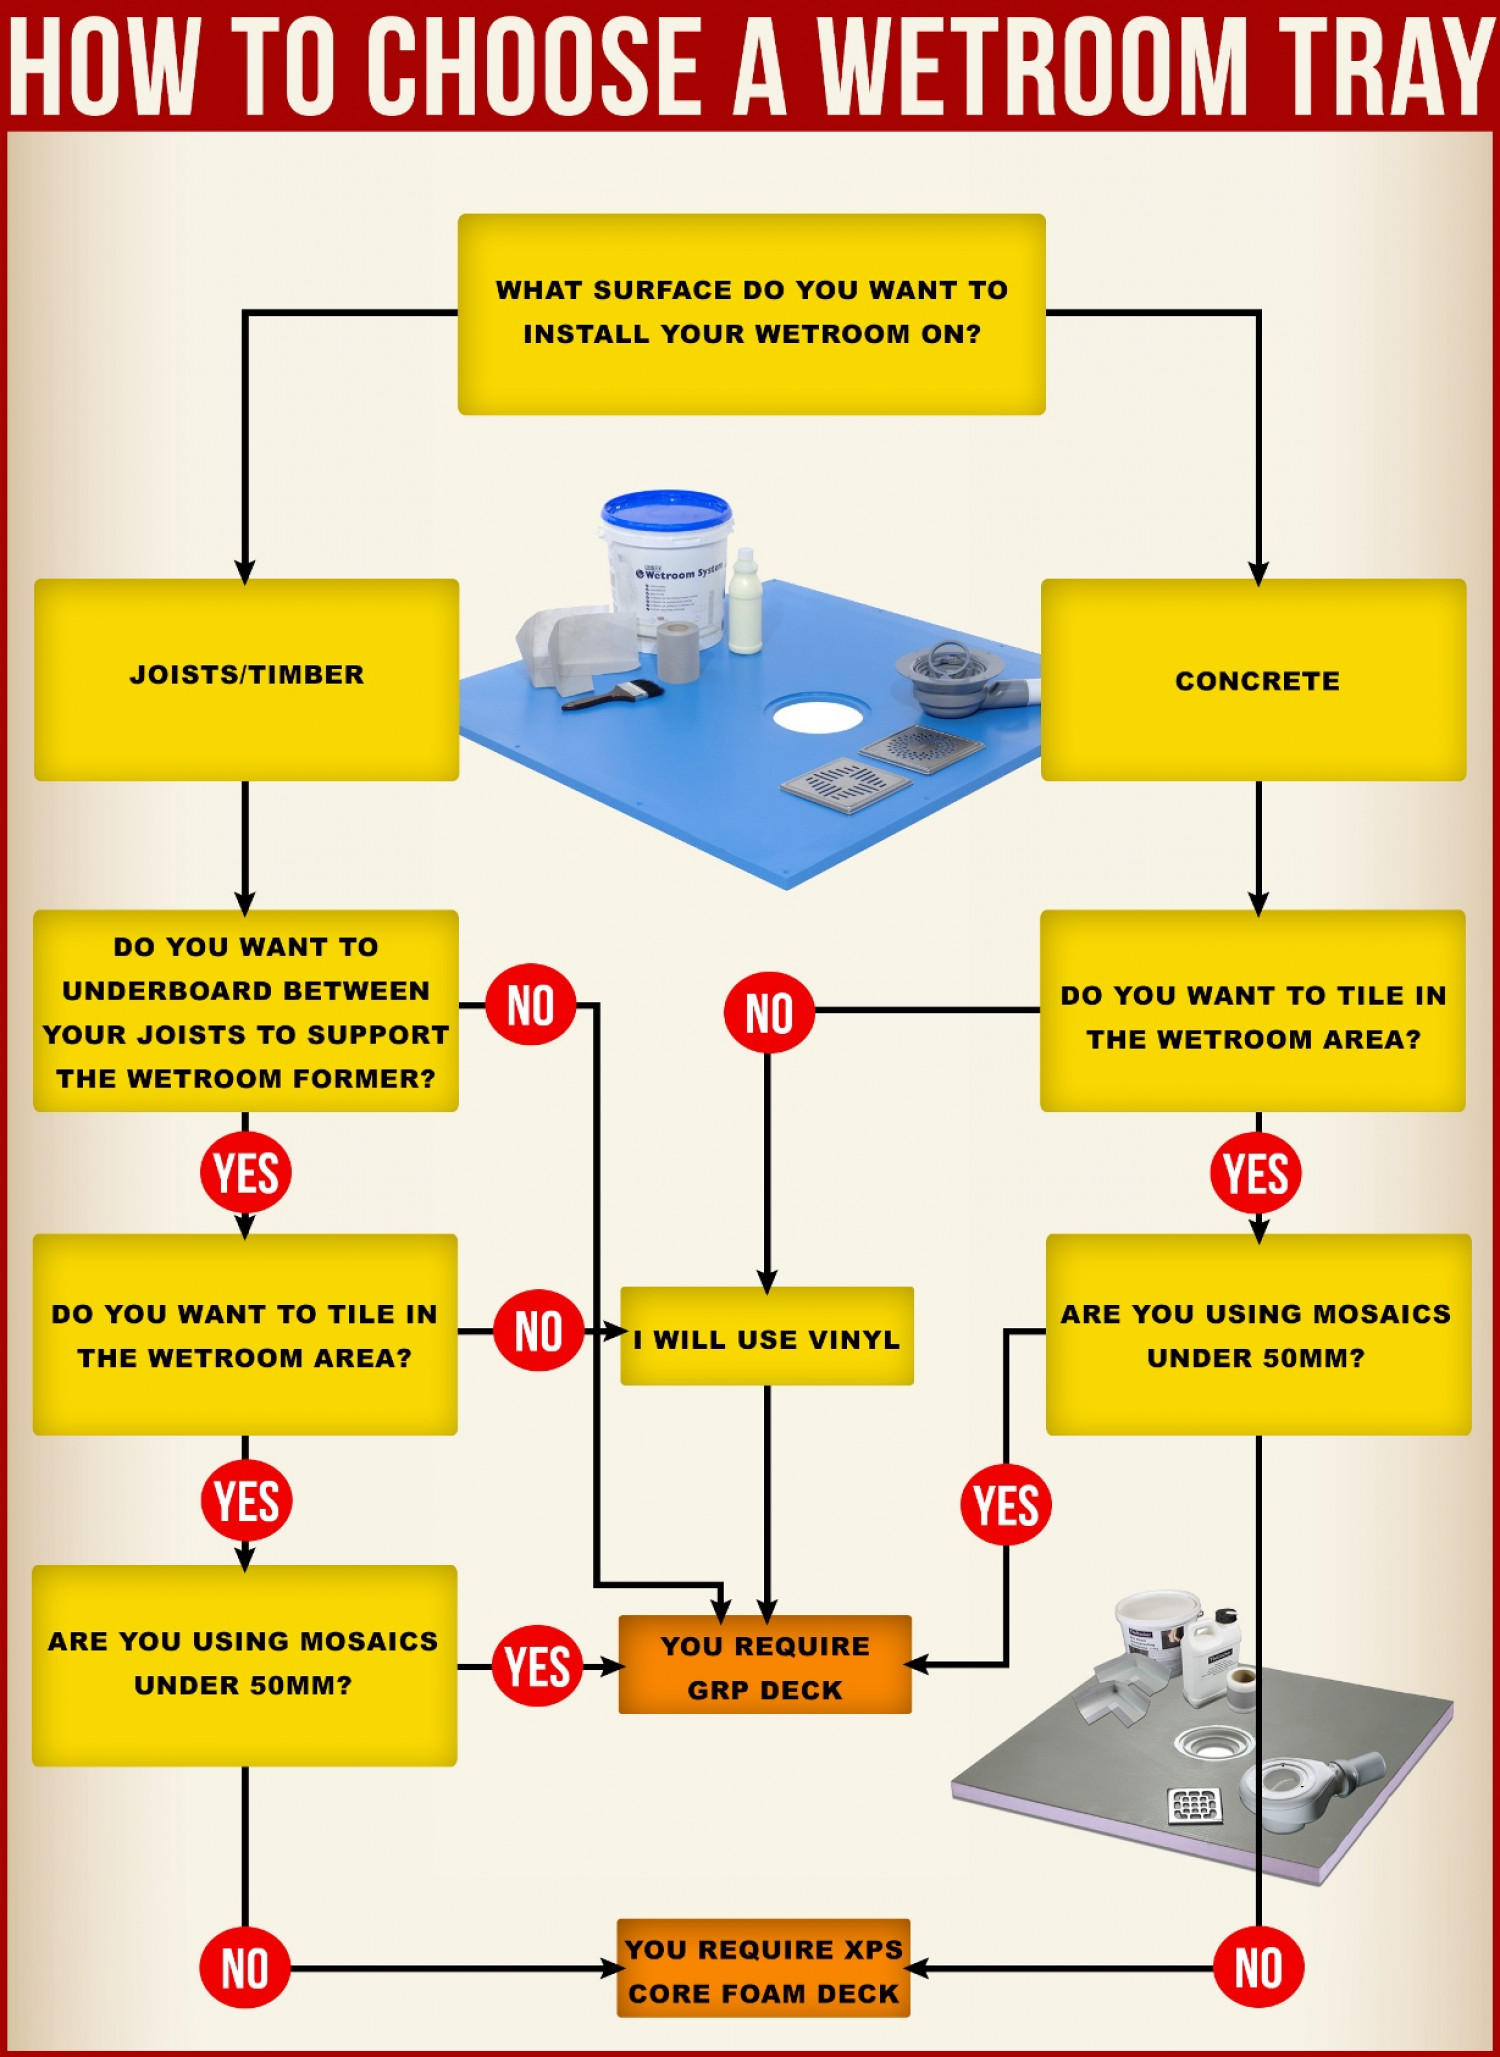 How to Choose a Wetroom Tray Infographic